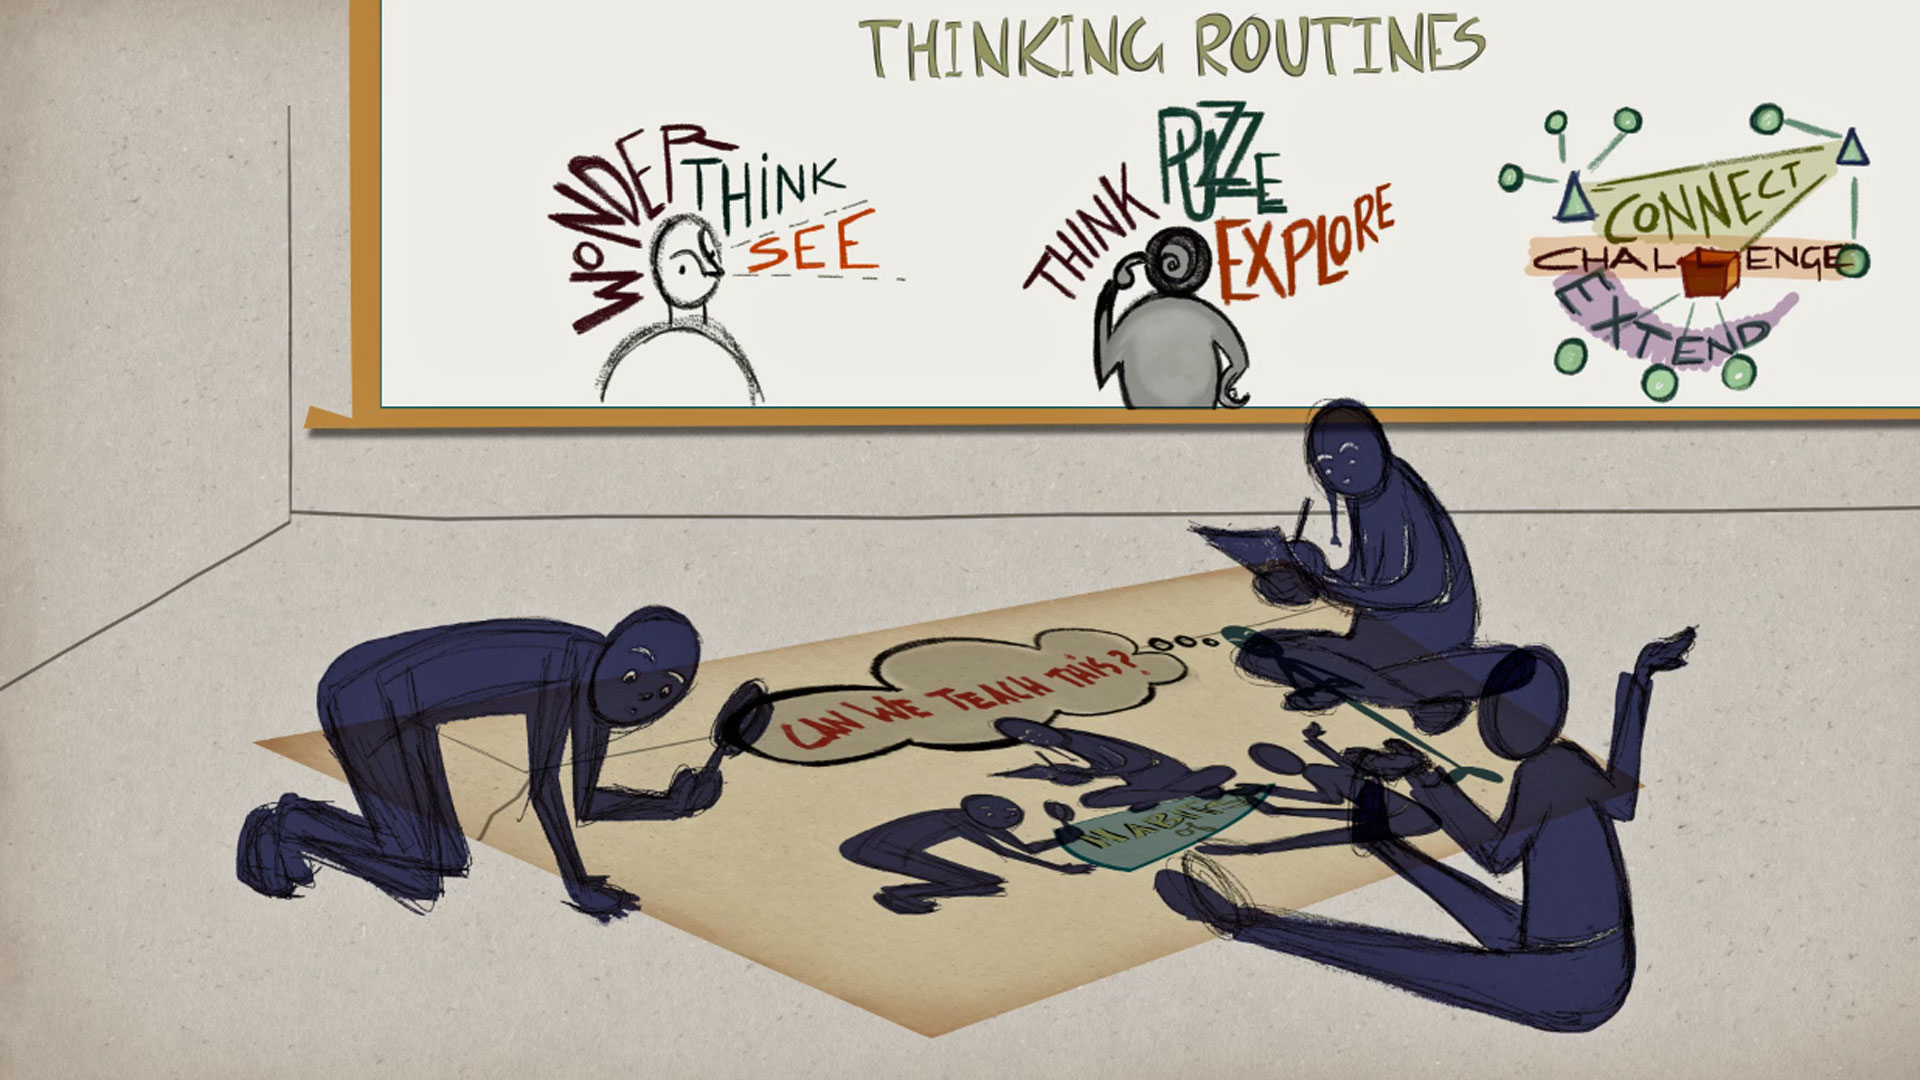 When Kids Have Structure for Thinking, Better Learning Emerges